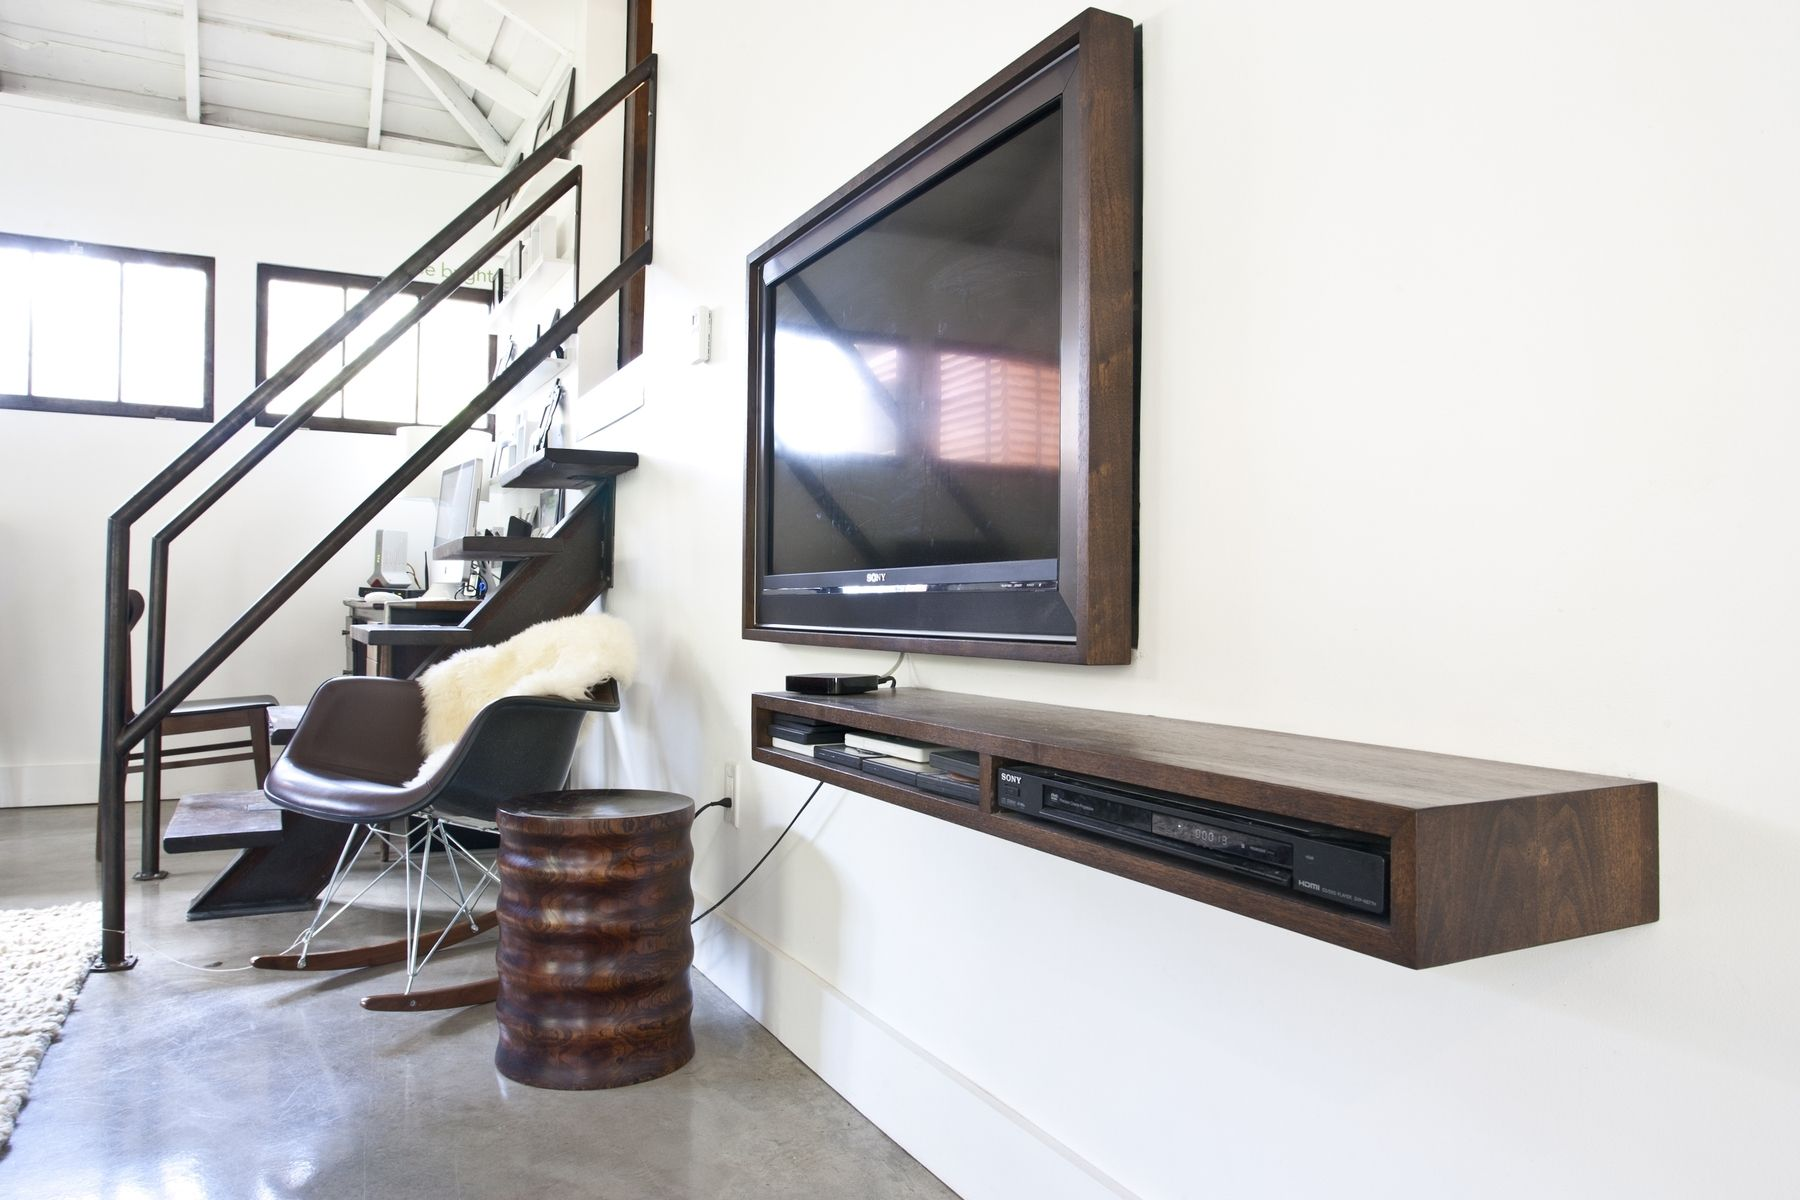 Floating Wooden Shelf On White Wall Near Flat Tv In Living Room With Chair And Tile